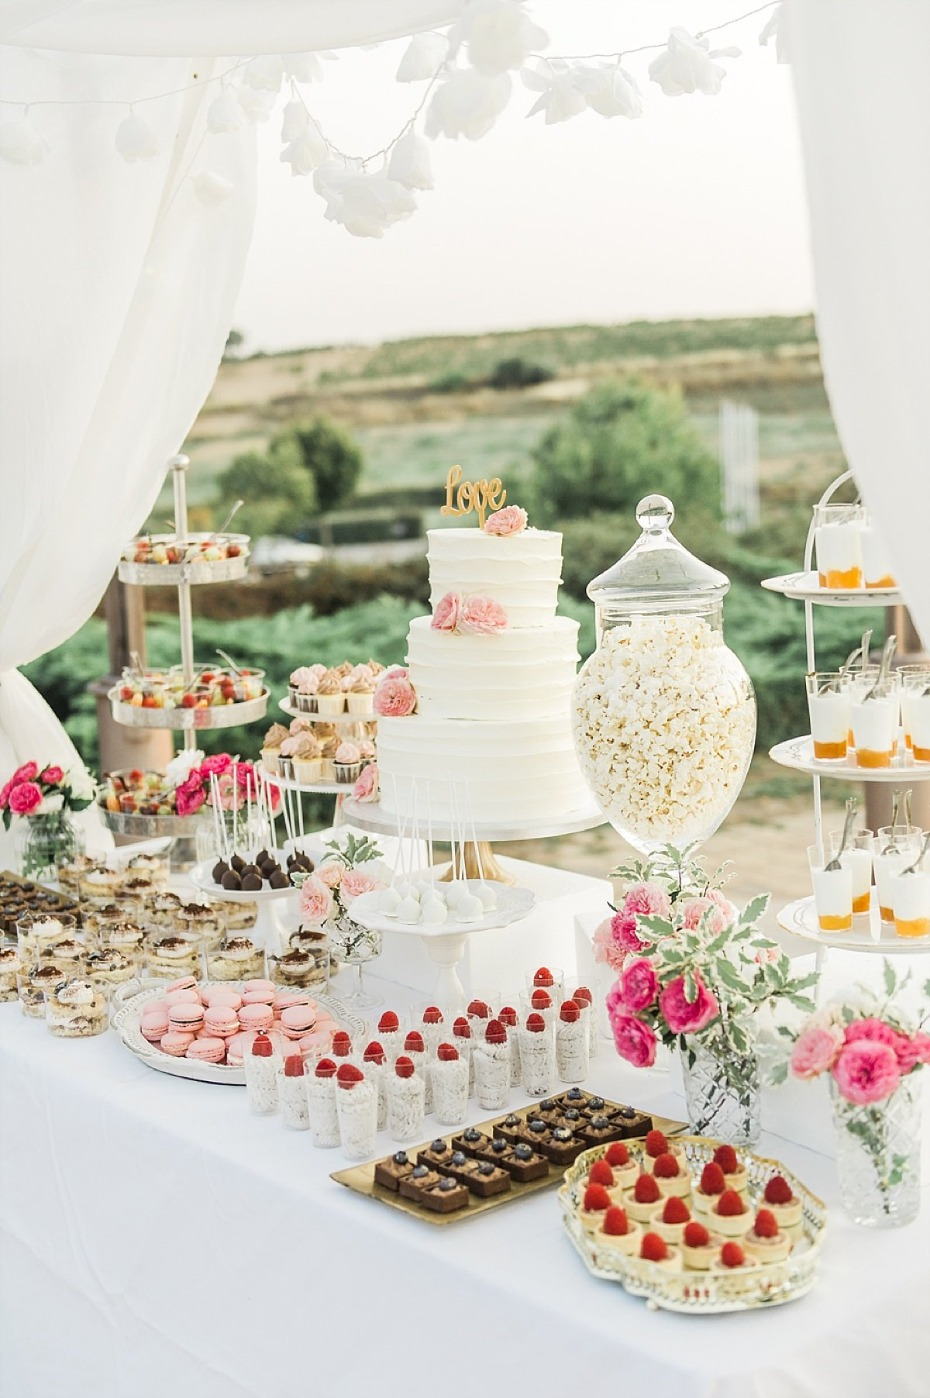 beautiful dream wedding dessert table